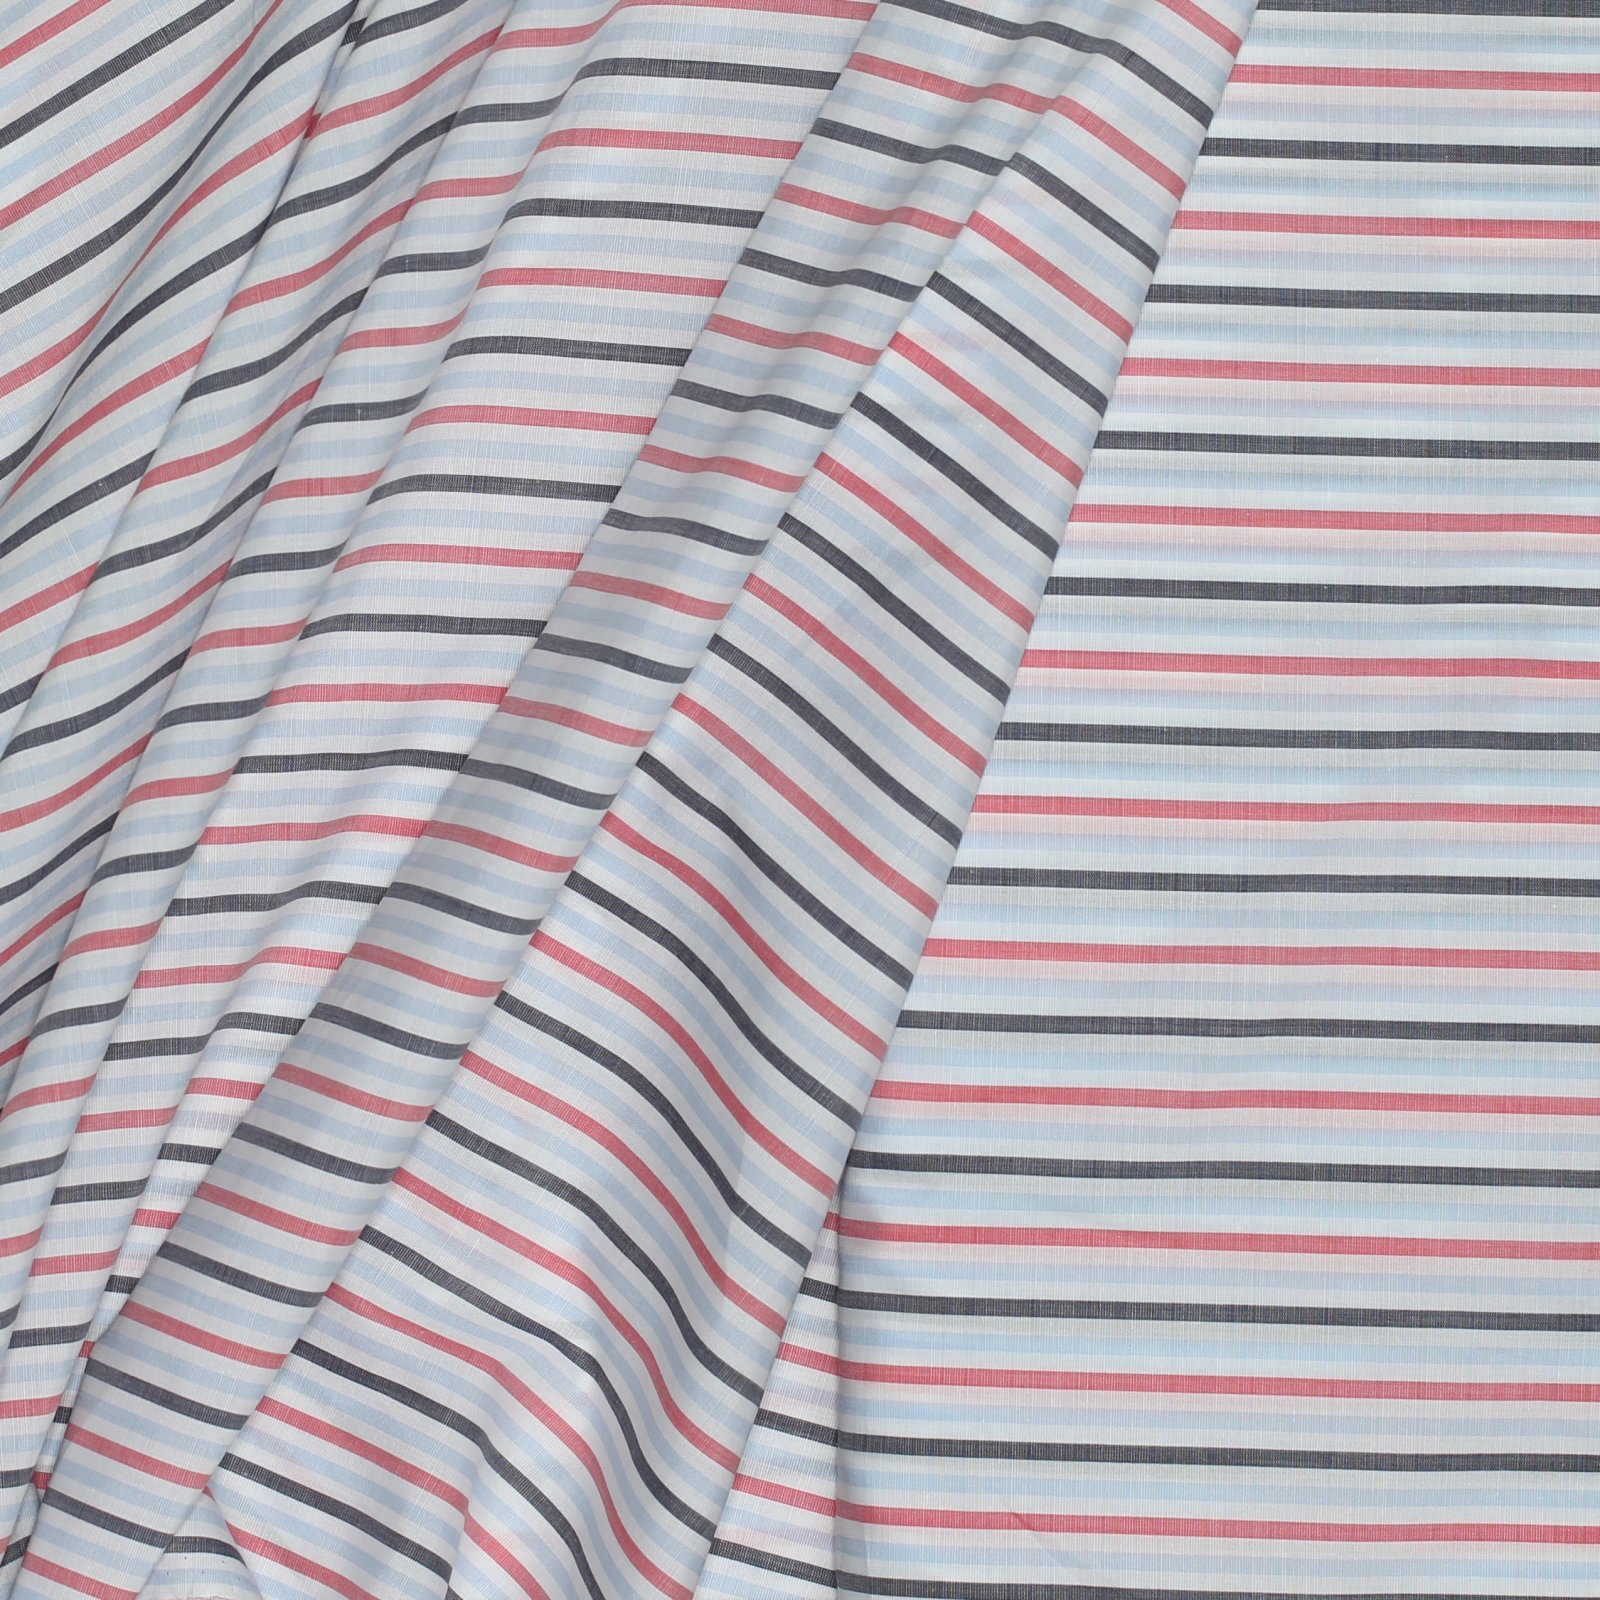 Red/Sky Blue/Navy Stripe Italian Cotton 120s 2PLY